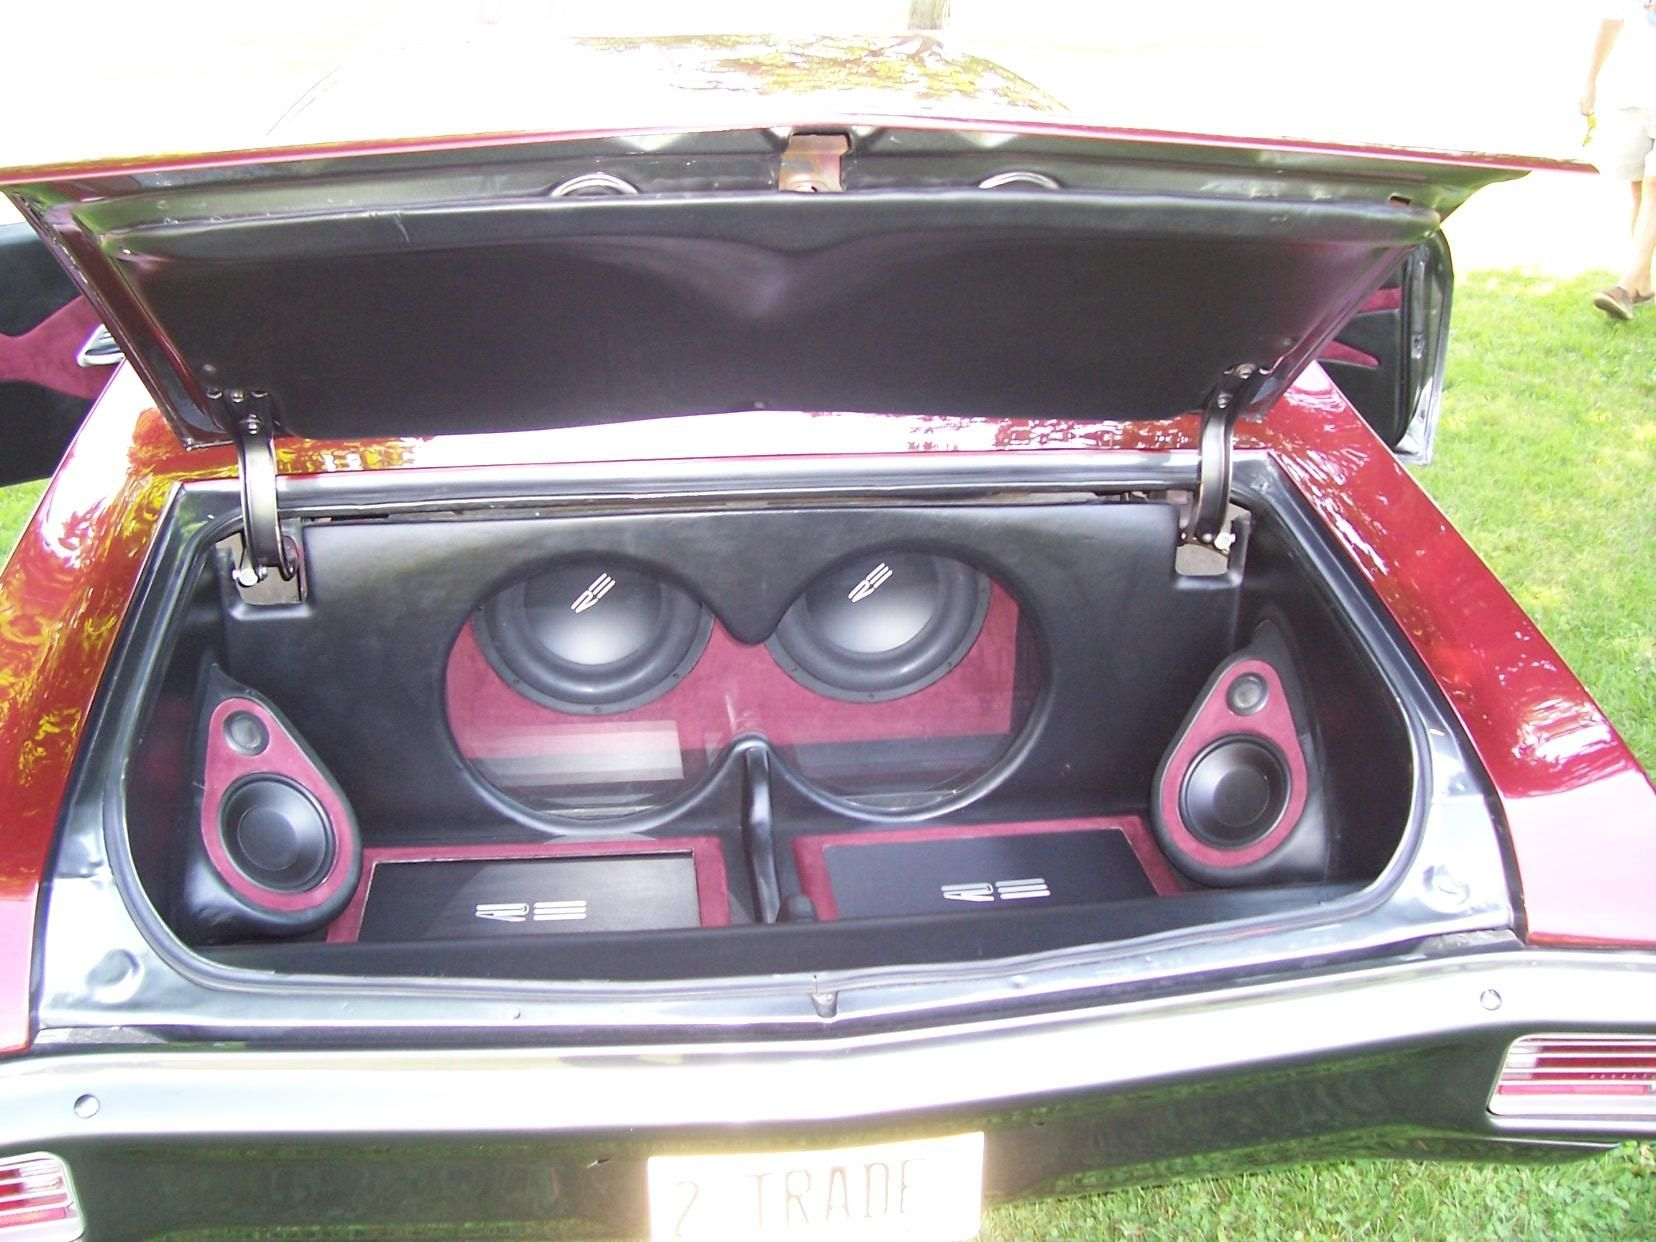 70 chevelle car audio install re audio fiberglass trunk plexiglass window subwoofers subs